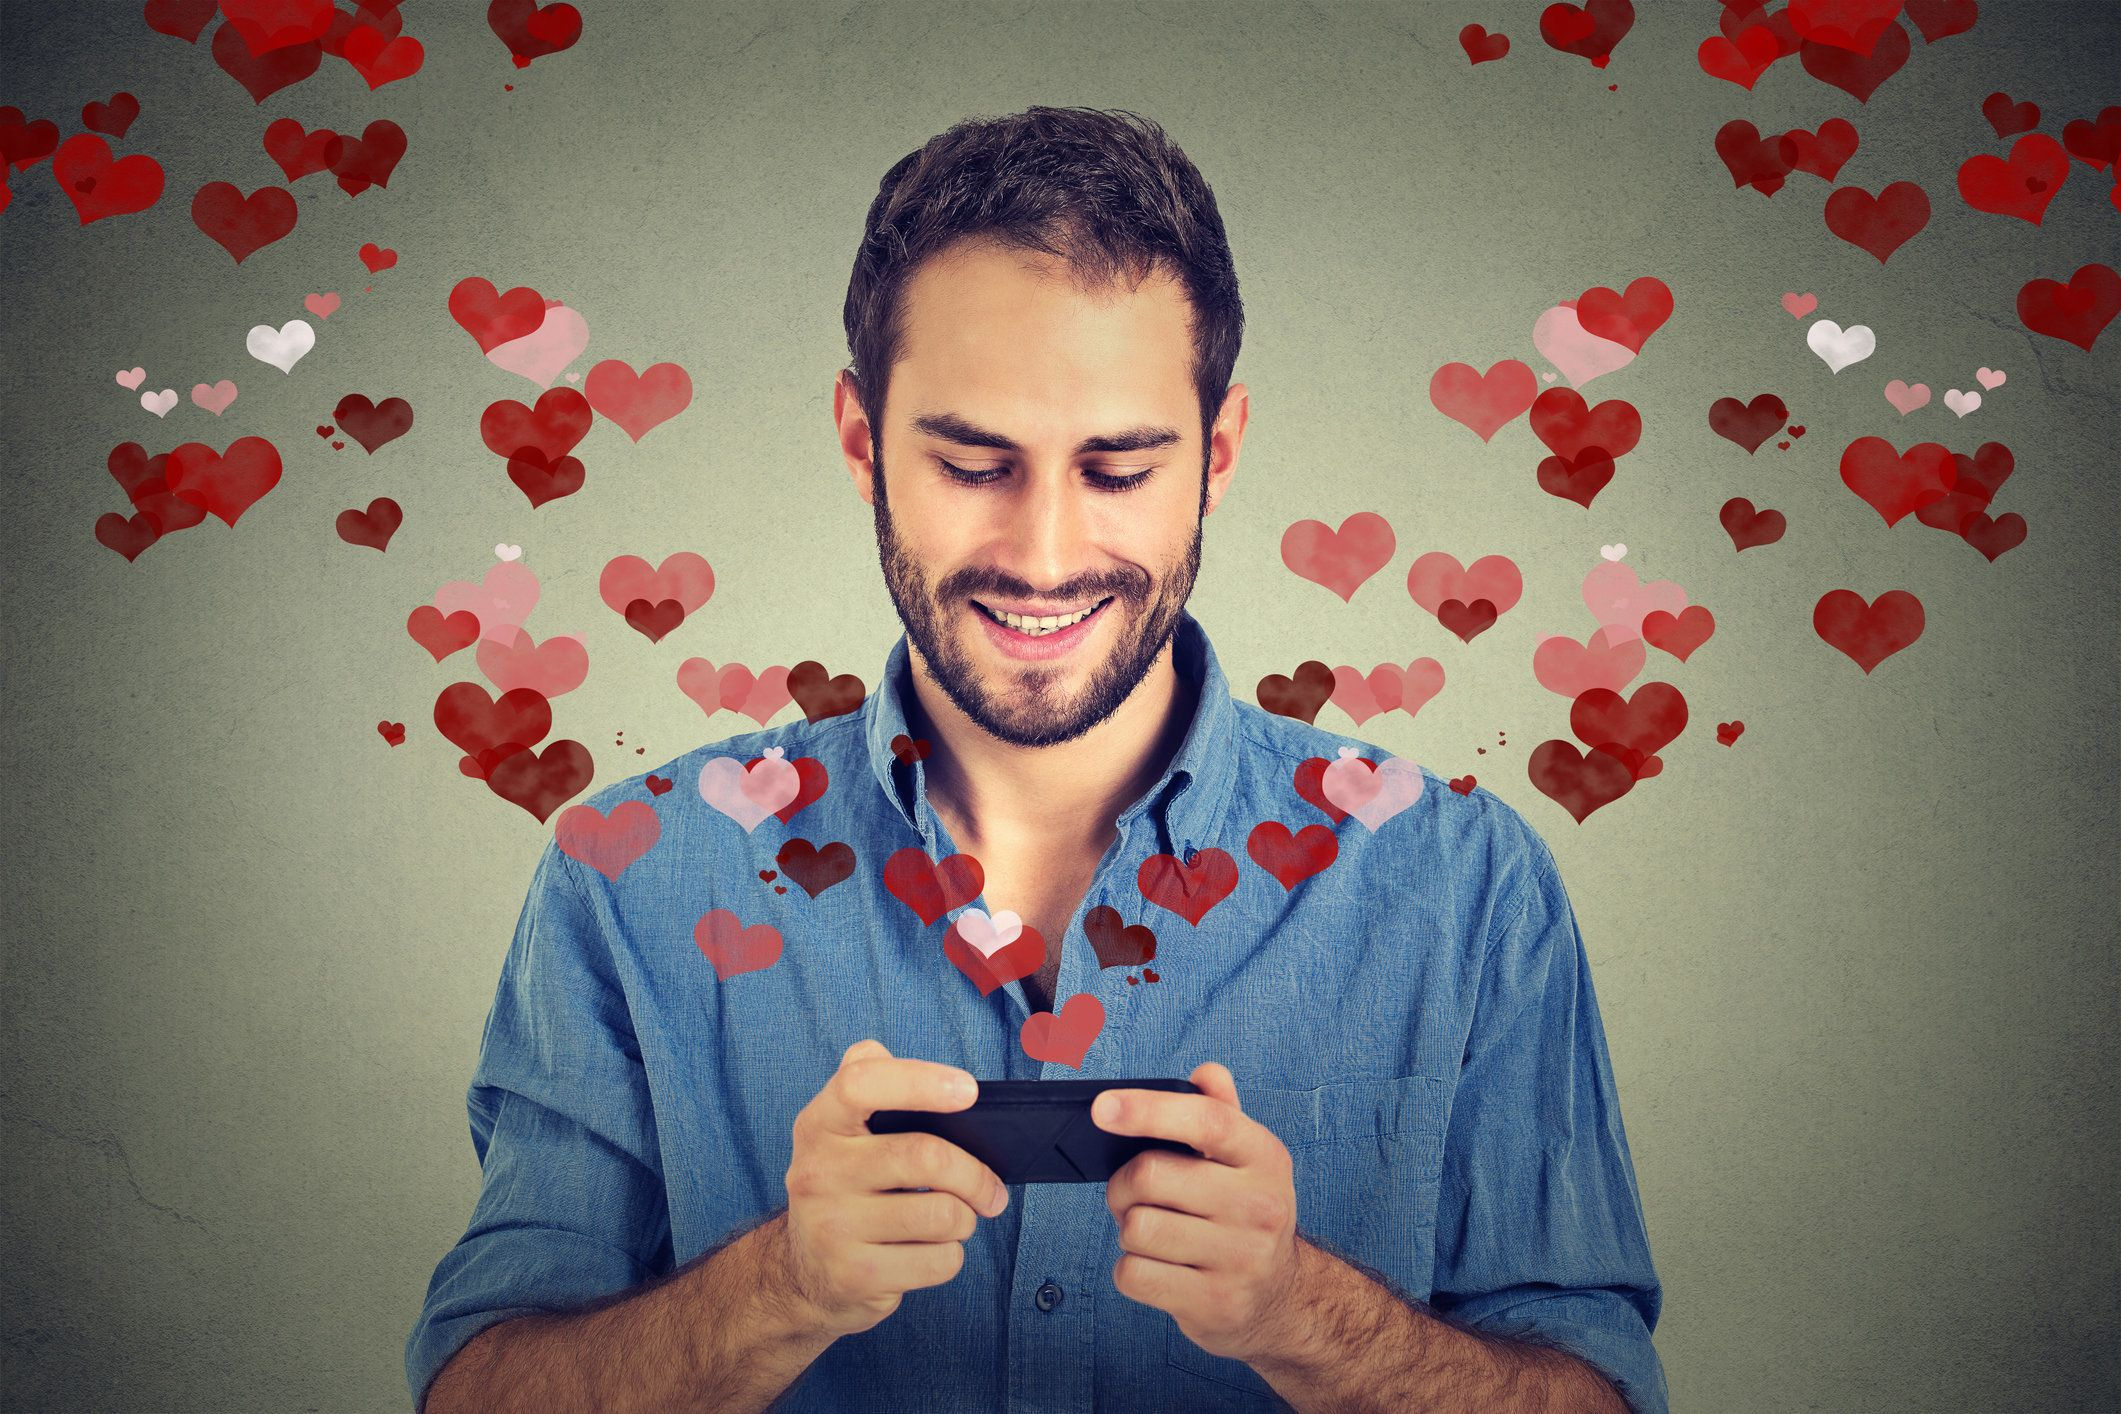 Portrait happy man sending love sms text message on mobile phone with red hearts flying away from screen isolated on grey wall background. Human emotions